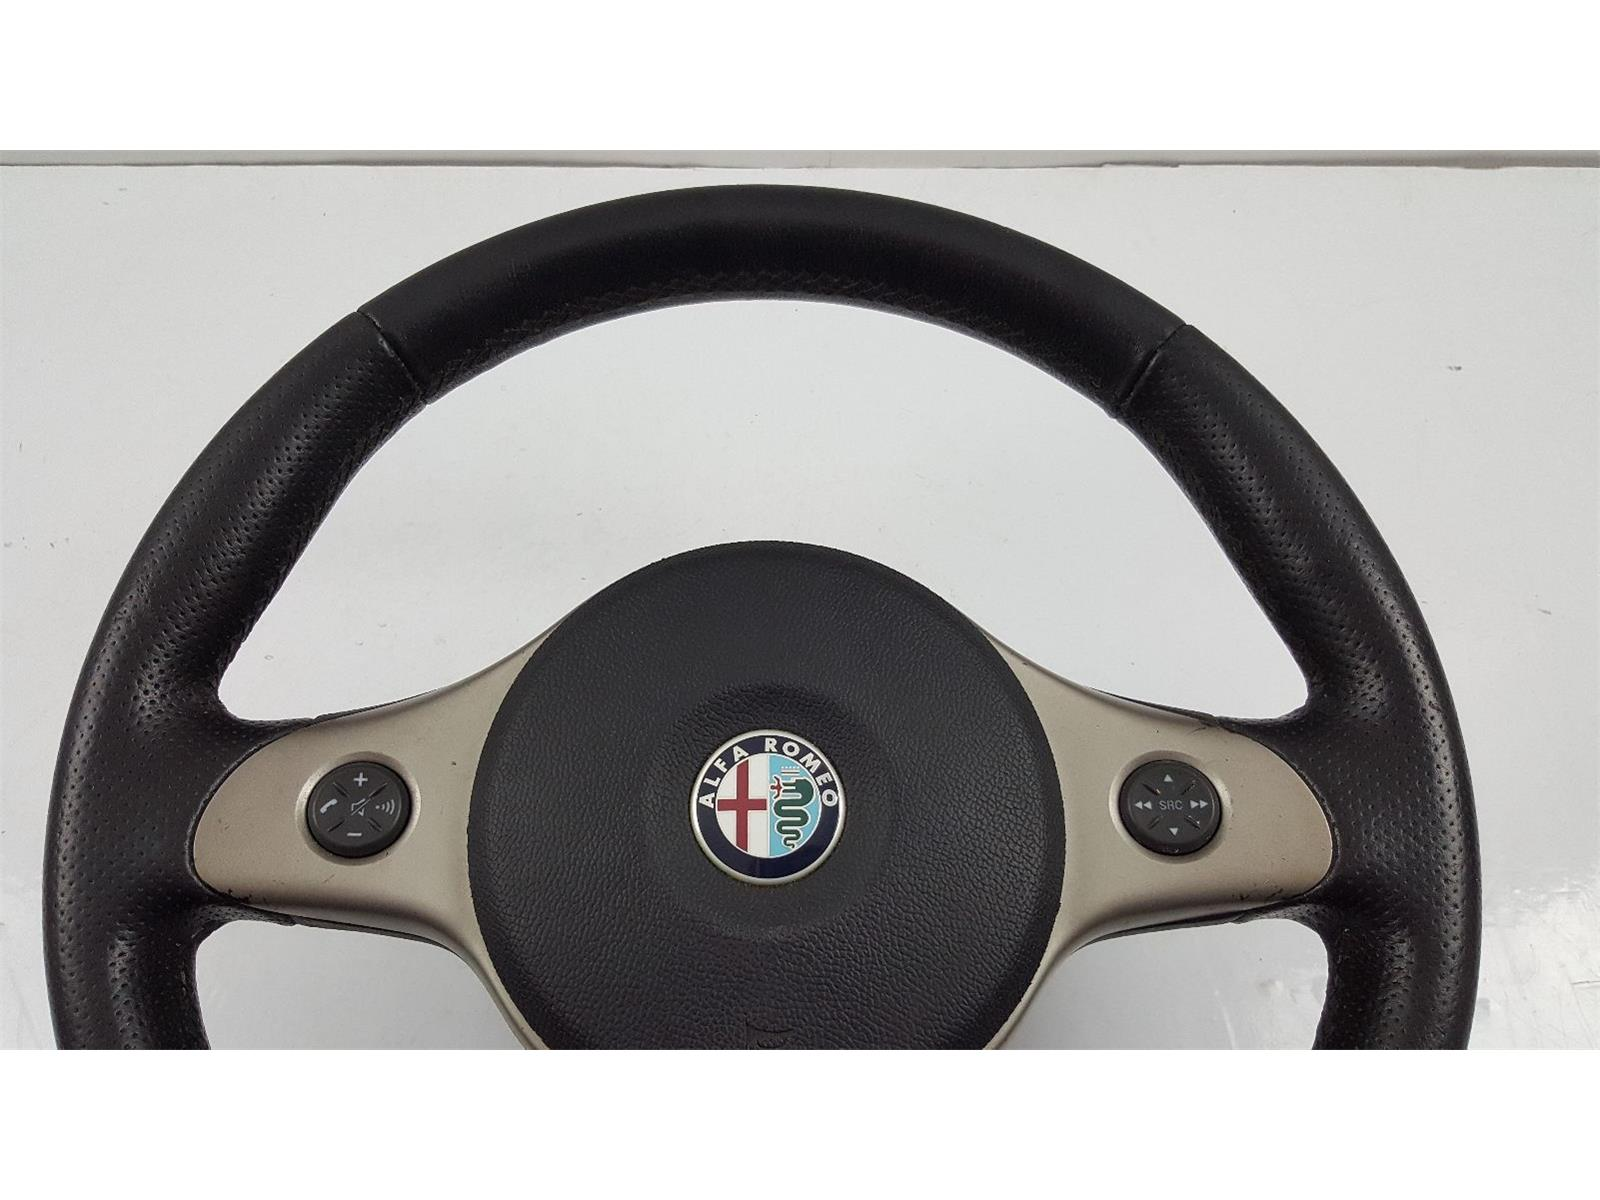 Alfa Romeo 159 2006 To 2009 Steering Wheel Petrol Manual For Mk1 Airbag Black Leather